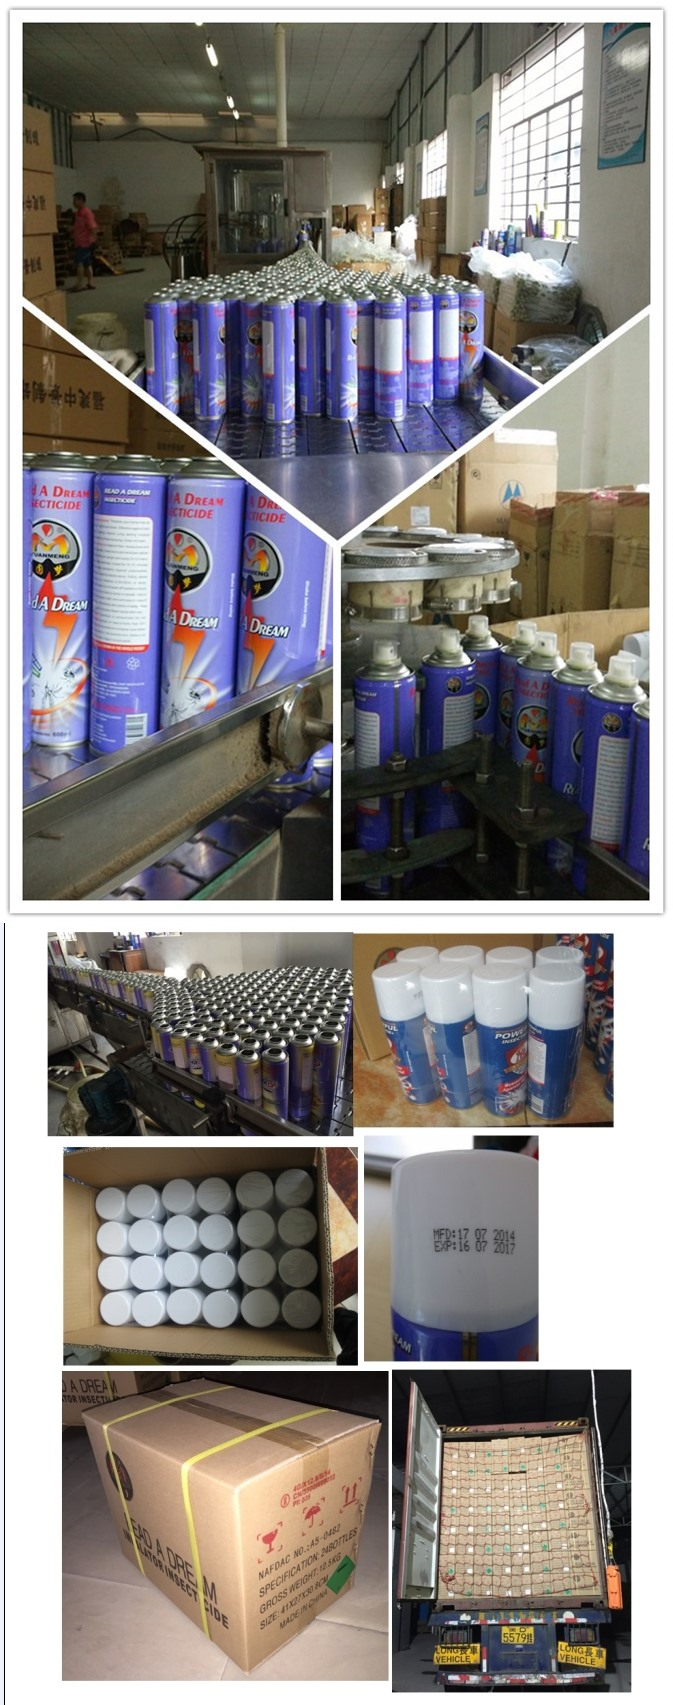 400ml China Supplier Rad Read a Dream Insecticide Spray Pest Control Spray